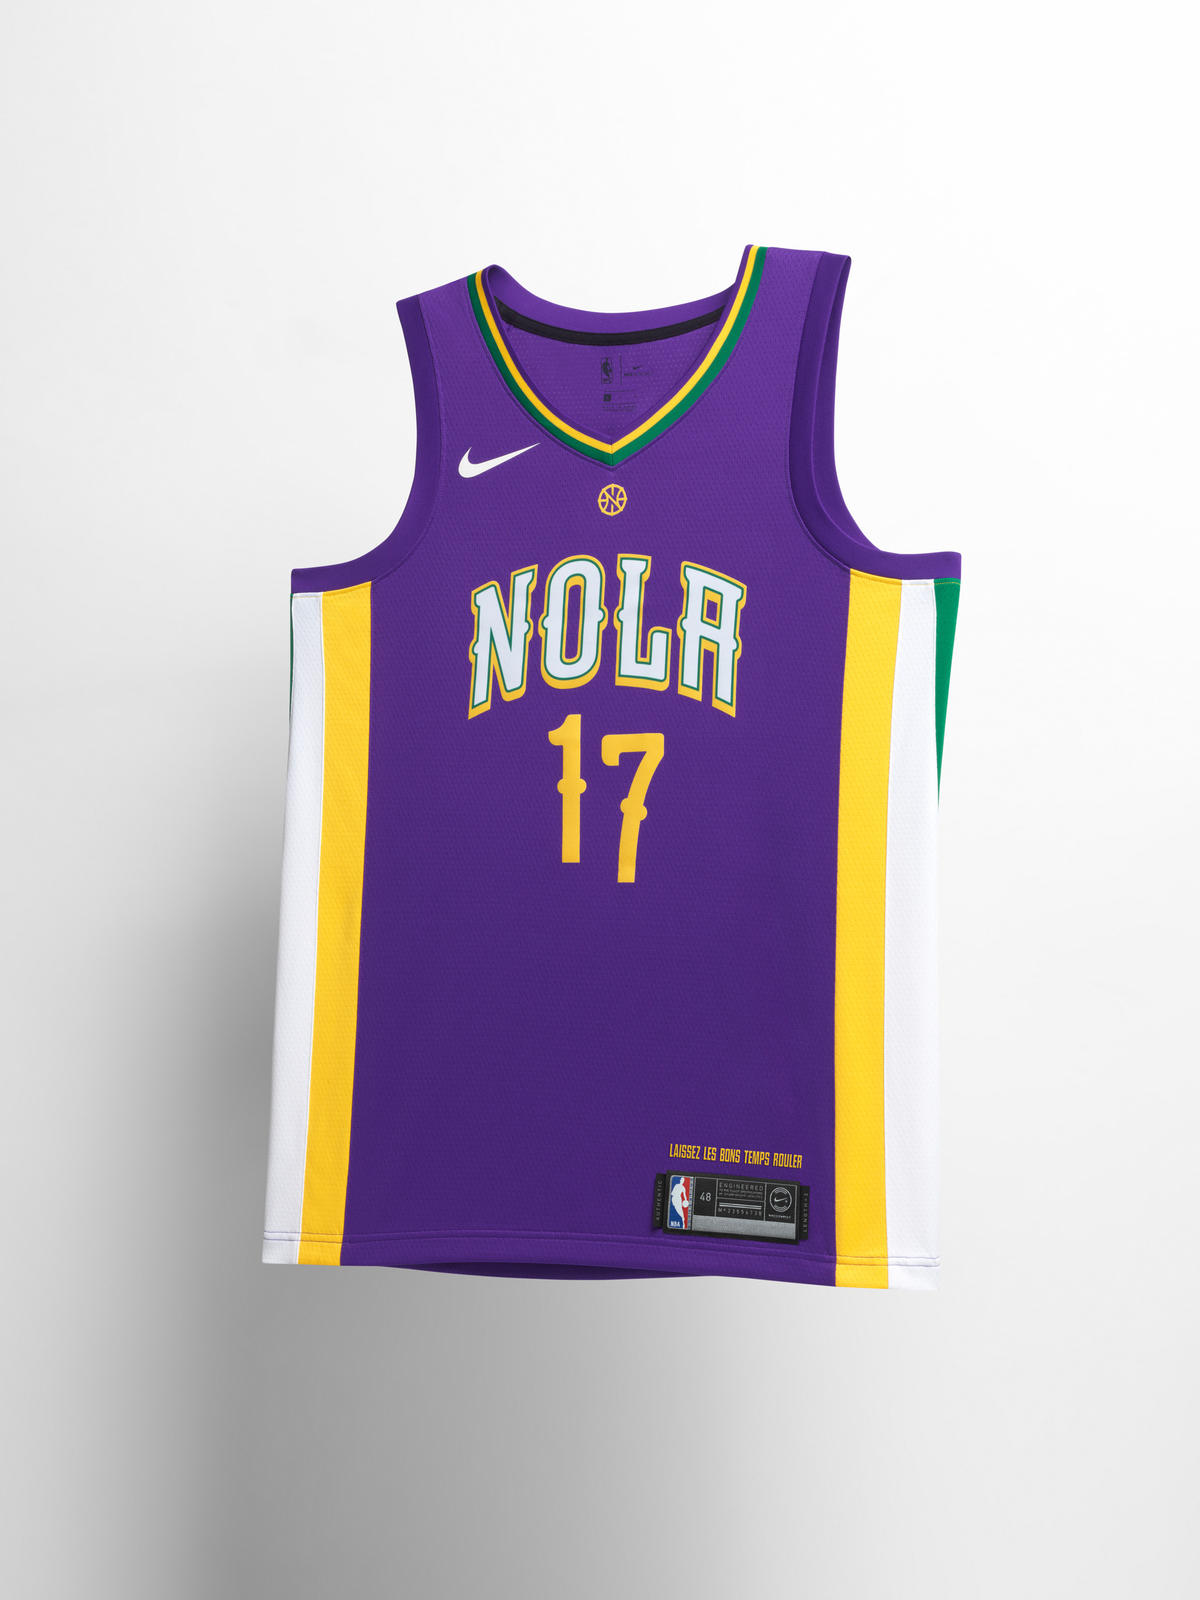 Nike_NBA_City_Edition_Uniform_New_Orleans_Pelicans_0046_native_1600